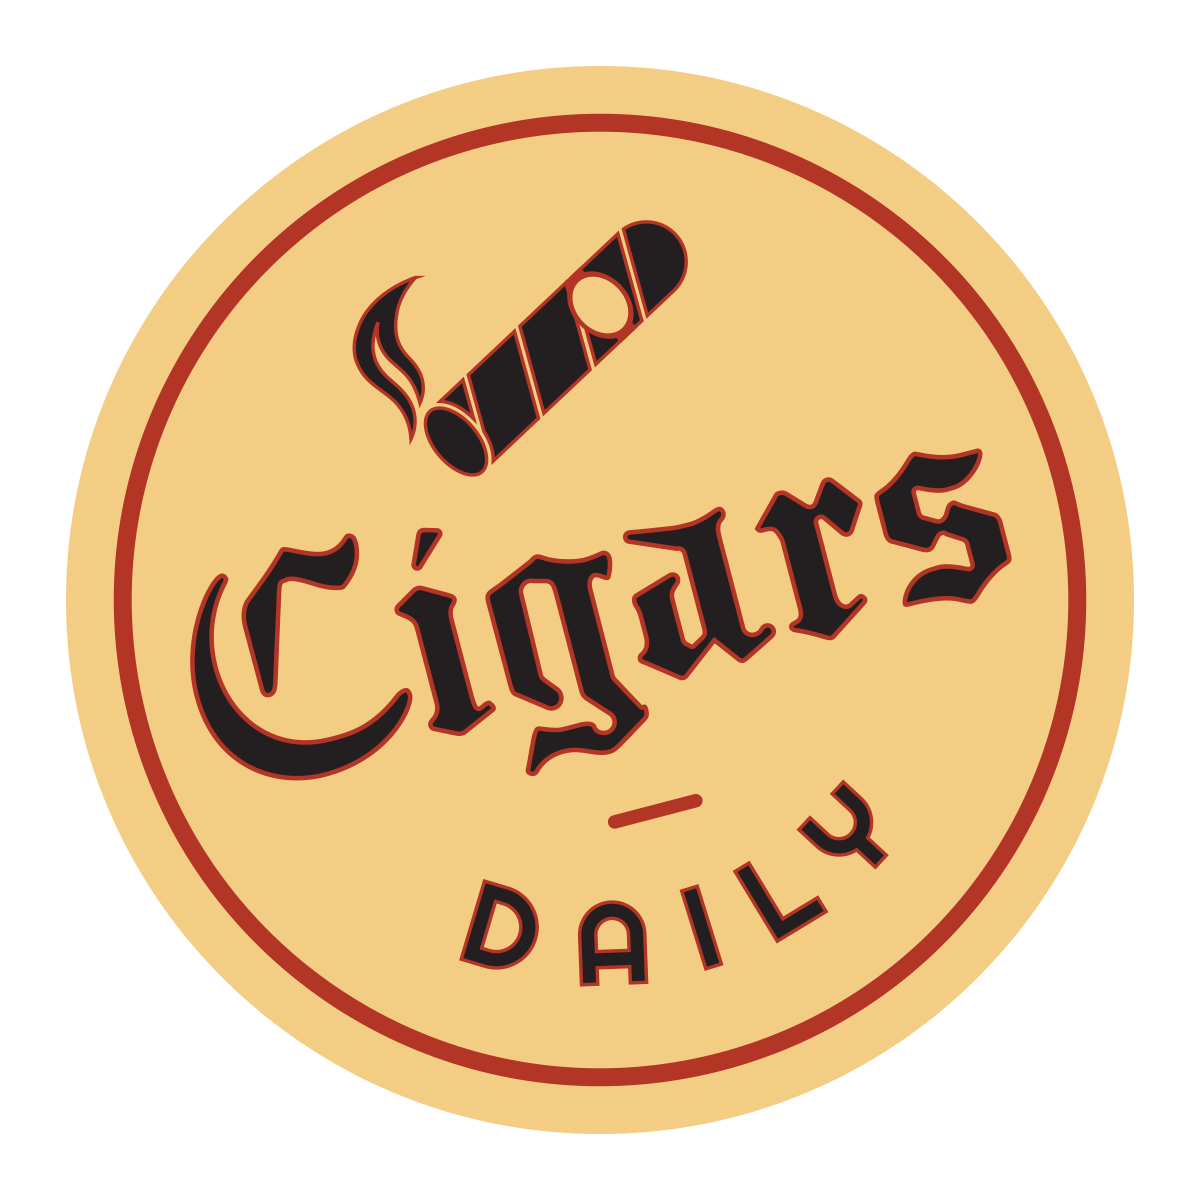 Cigars Daily